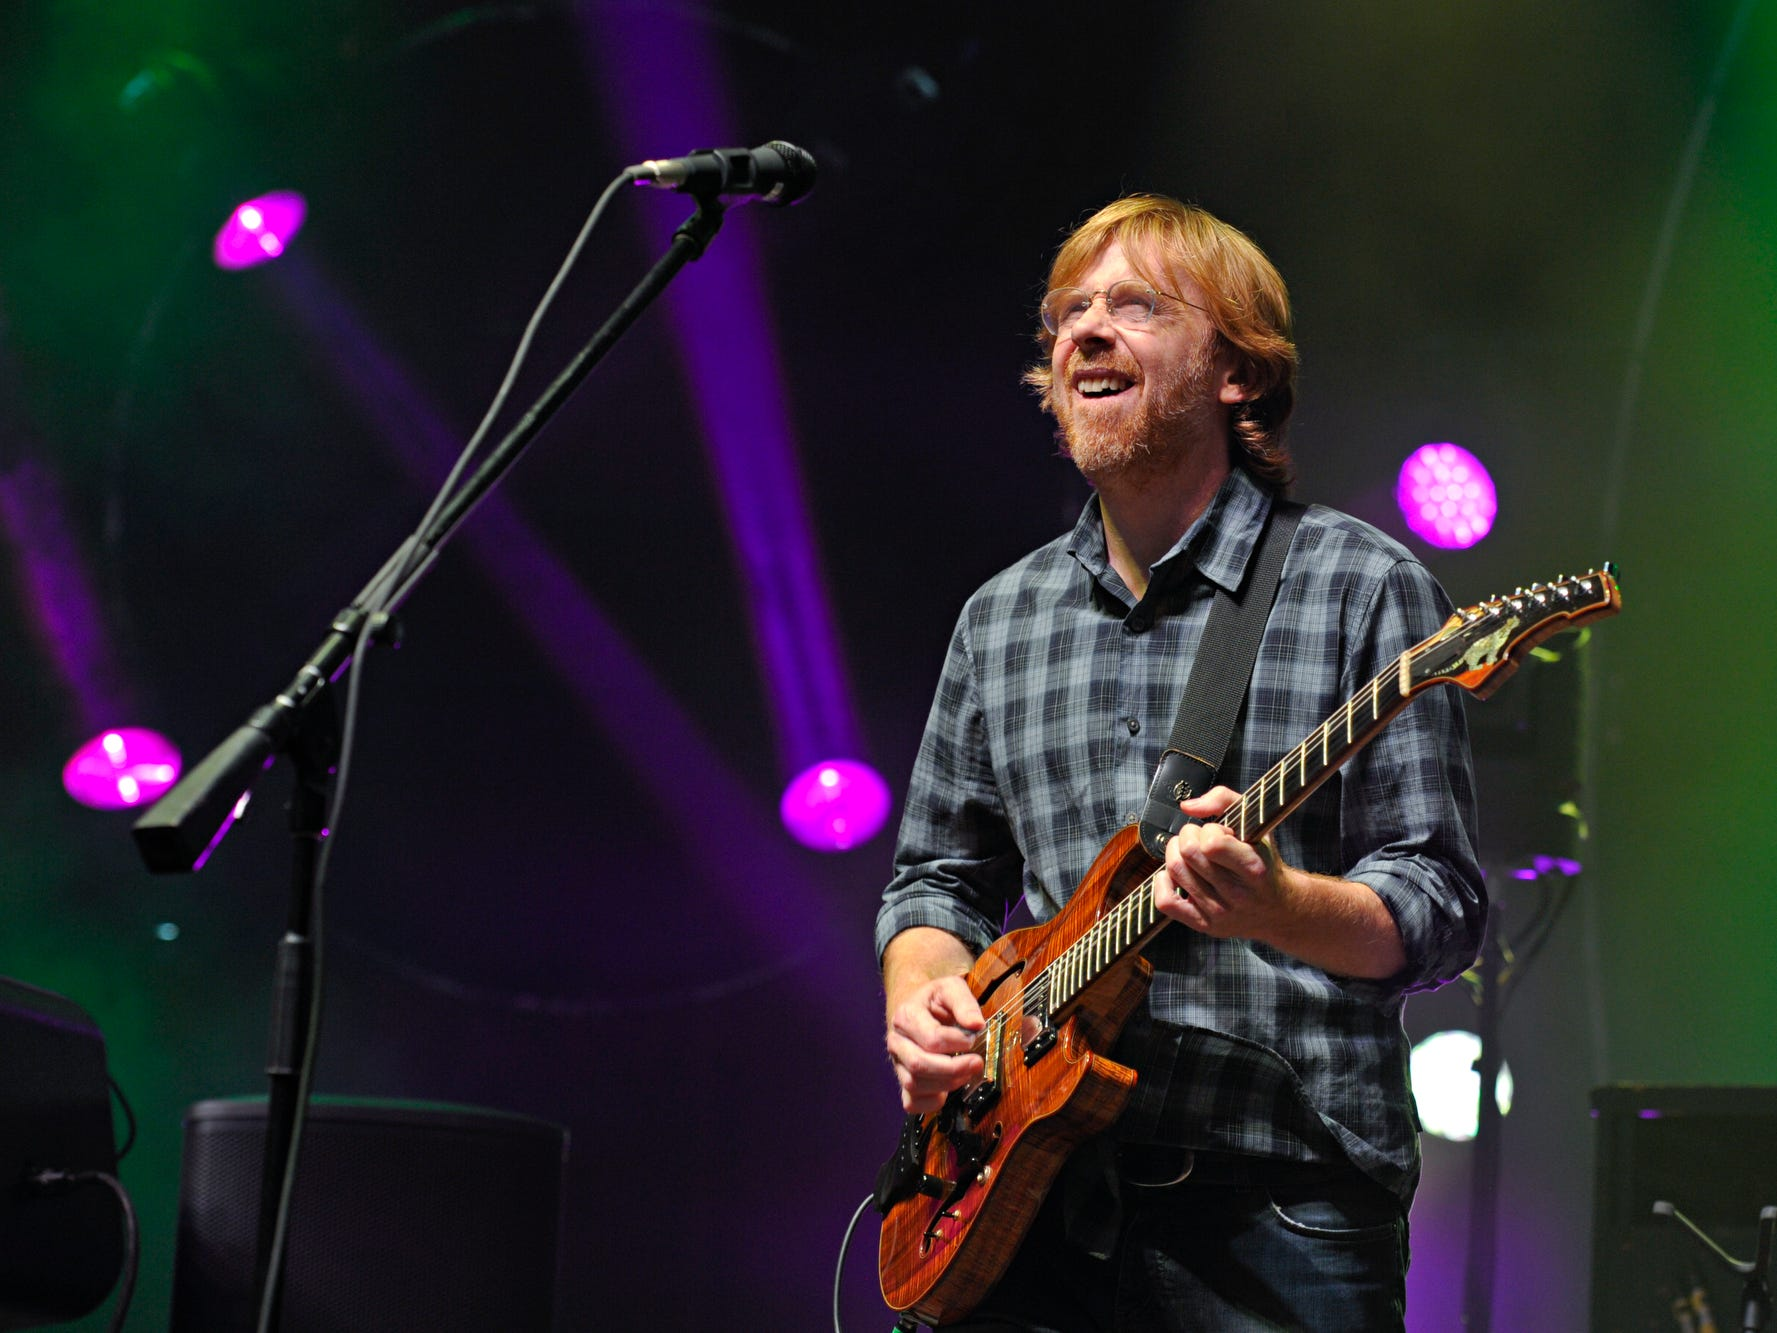 OCT. 23